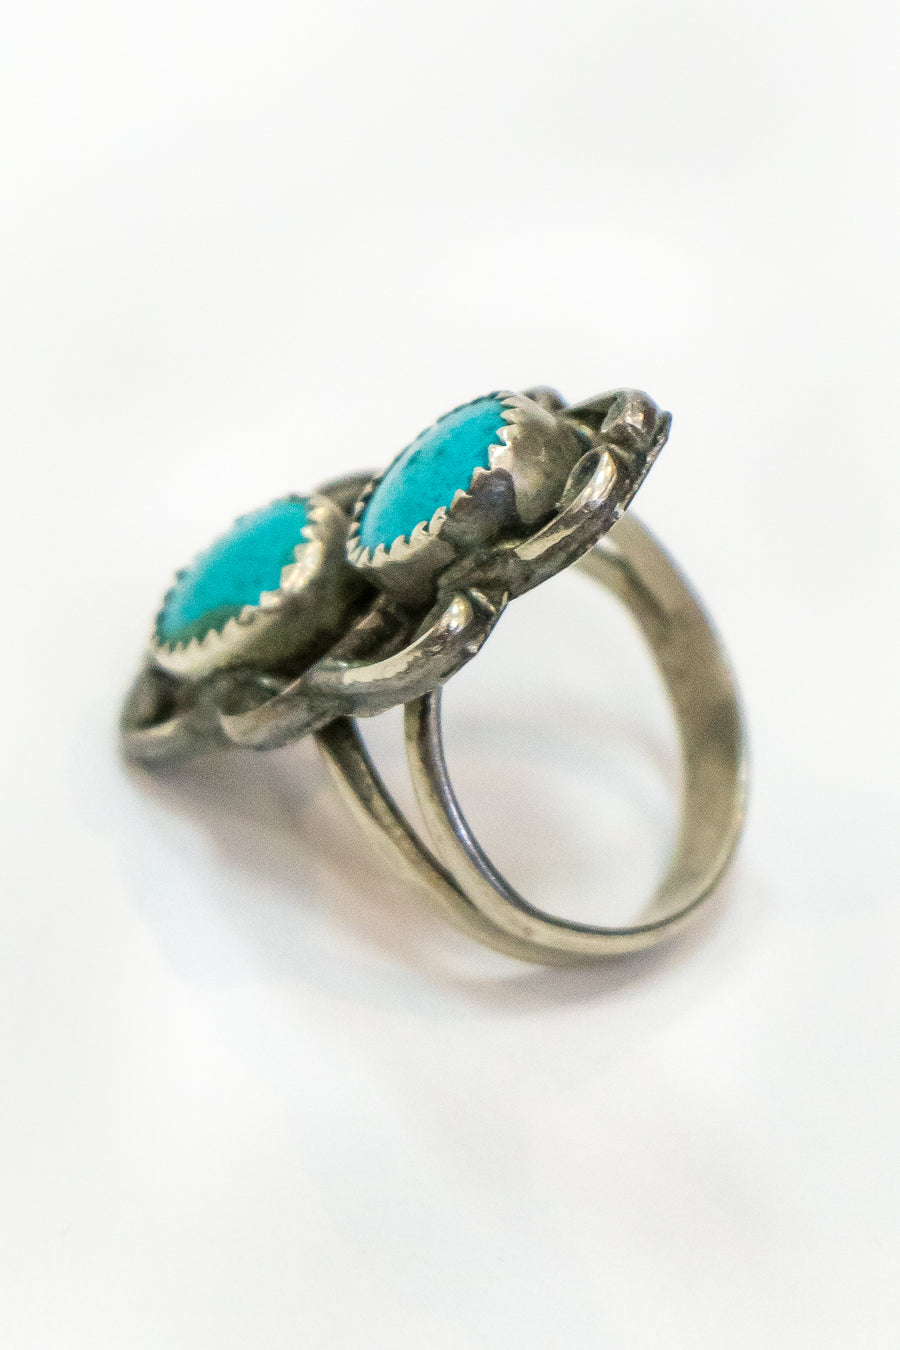 Vintage Turquoise Ring - The Canyon